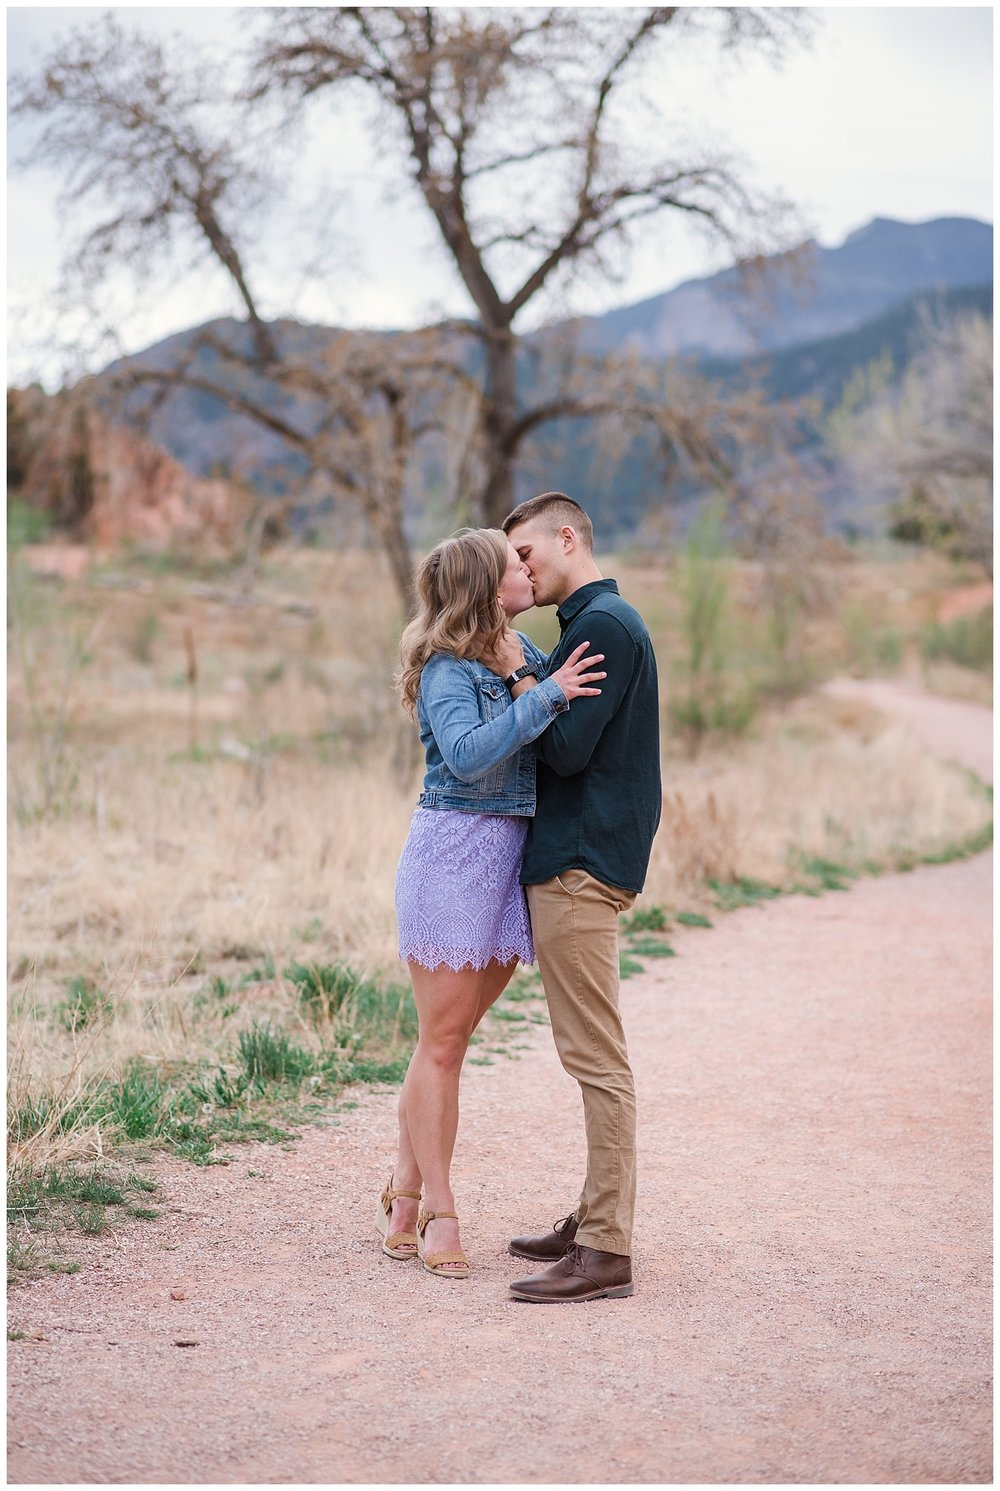 Engagement Photos, Couple Walking down Pathway, Purple Dress Engagement Outfit, Military Couple, Red Rocks Open Space Engagement Session, Colorado Engagement Photographer, Colorado Wedding Photographer, Denver Engagement Photographer, Denver Wedding Photographer, Colorado Elopement Photographer, Denver Elopement Photographer, Rocky Mountain Elopement Photographer, Best Denver Photographer, Best Colorado Photographer, Colorado Fine Art Photographer, Colorado Springs Engagement,